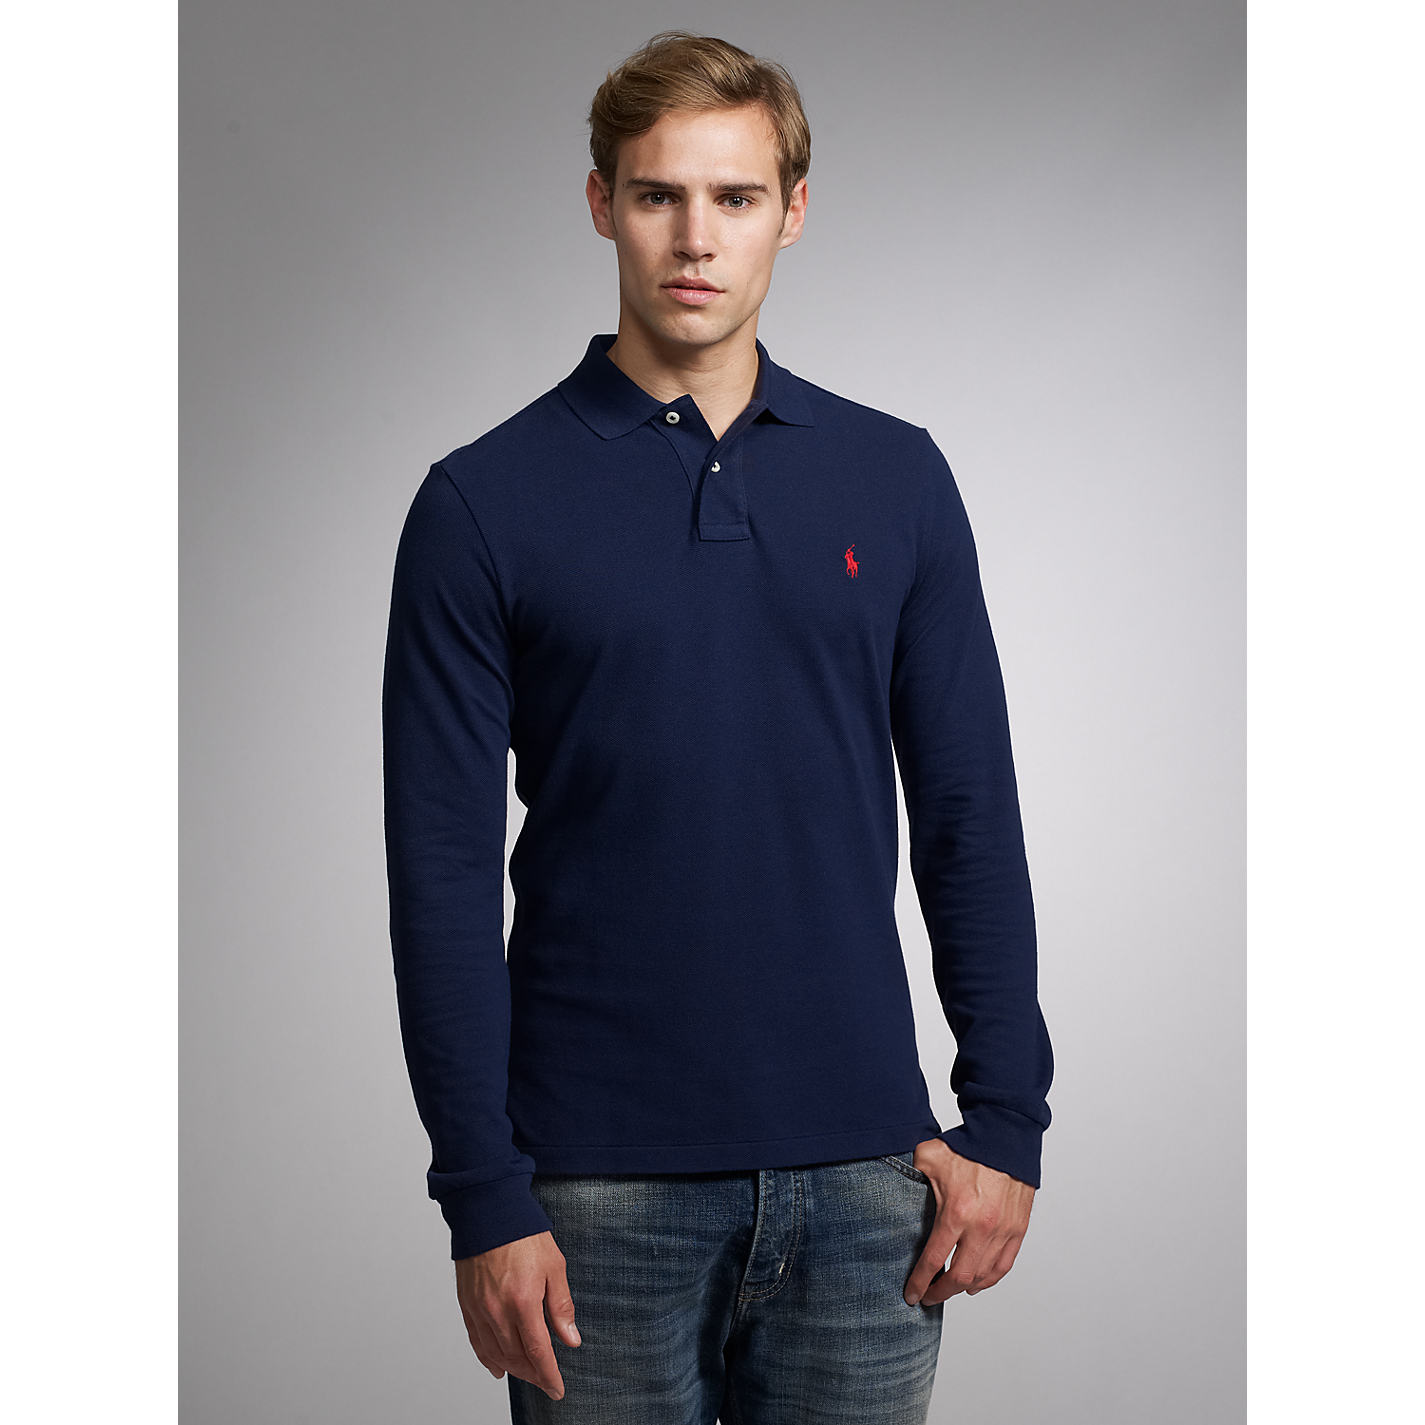 ... Buy Polo Ralph Lauren Custom Fit Long Sleeve Polo Shirt Online at johnlewis.com ...